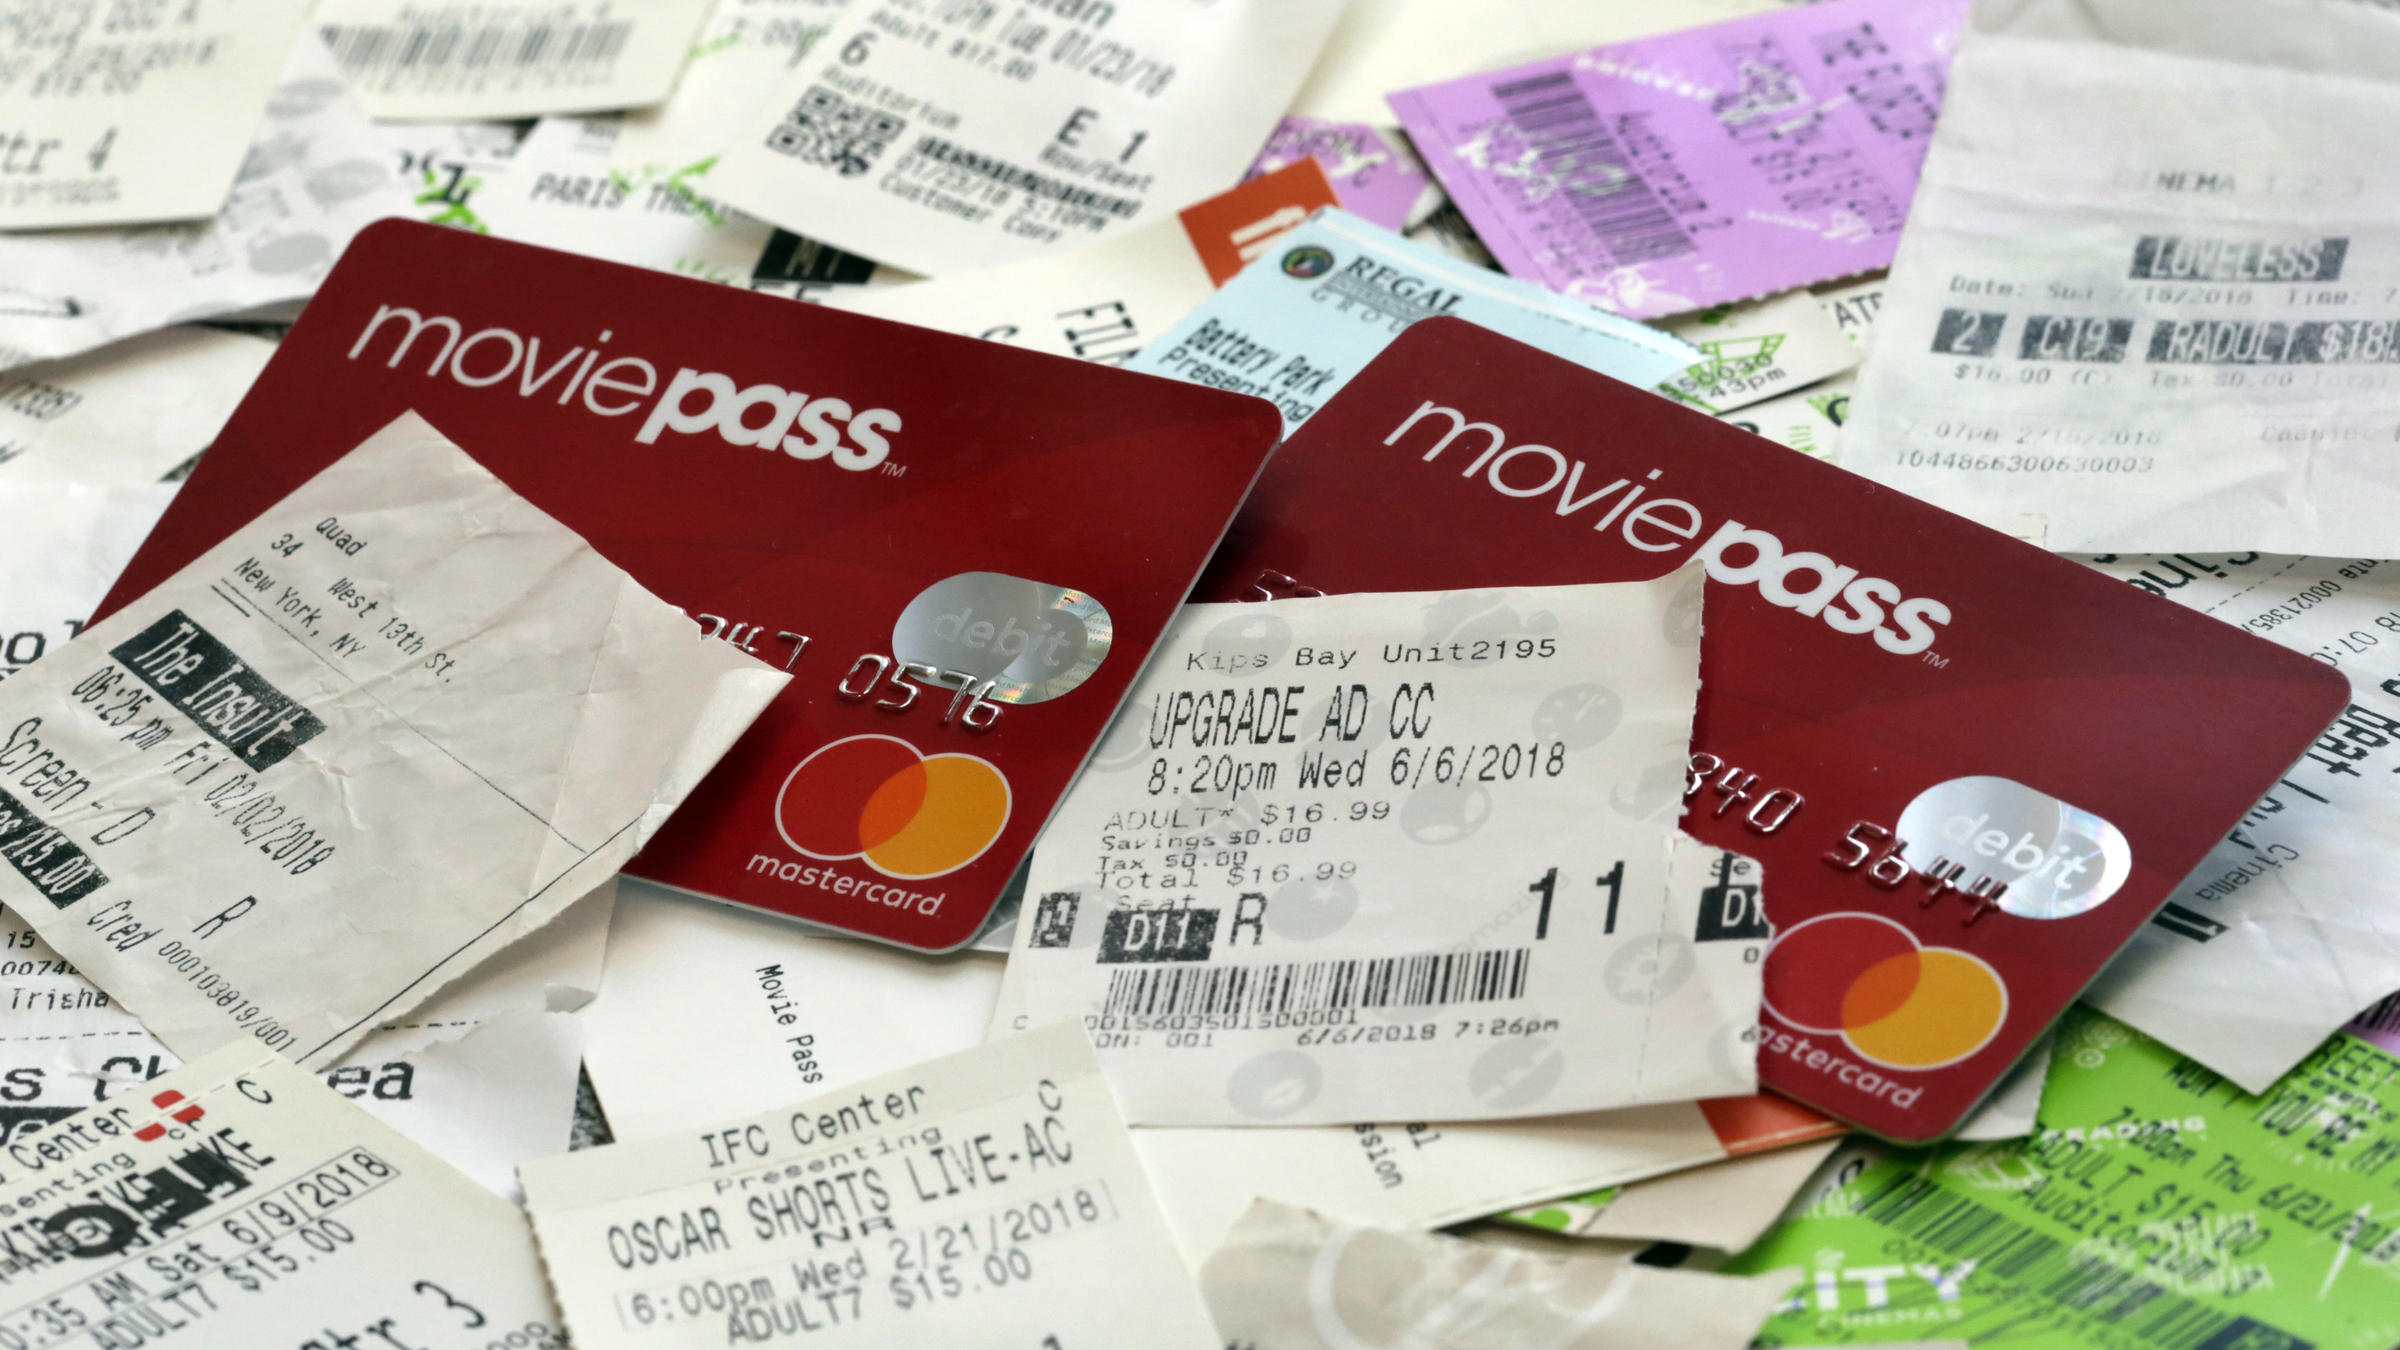 MoviePass is shutting down September 14